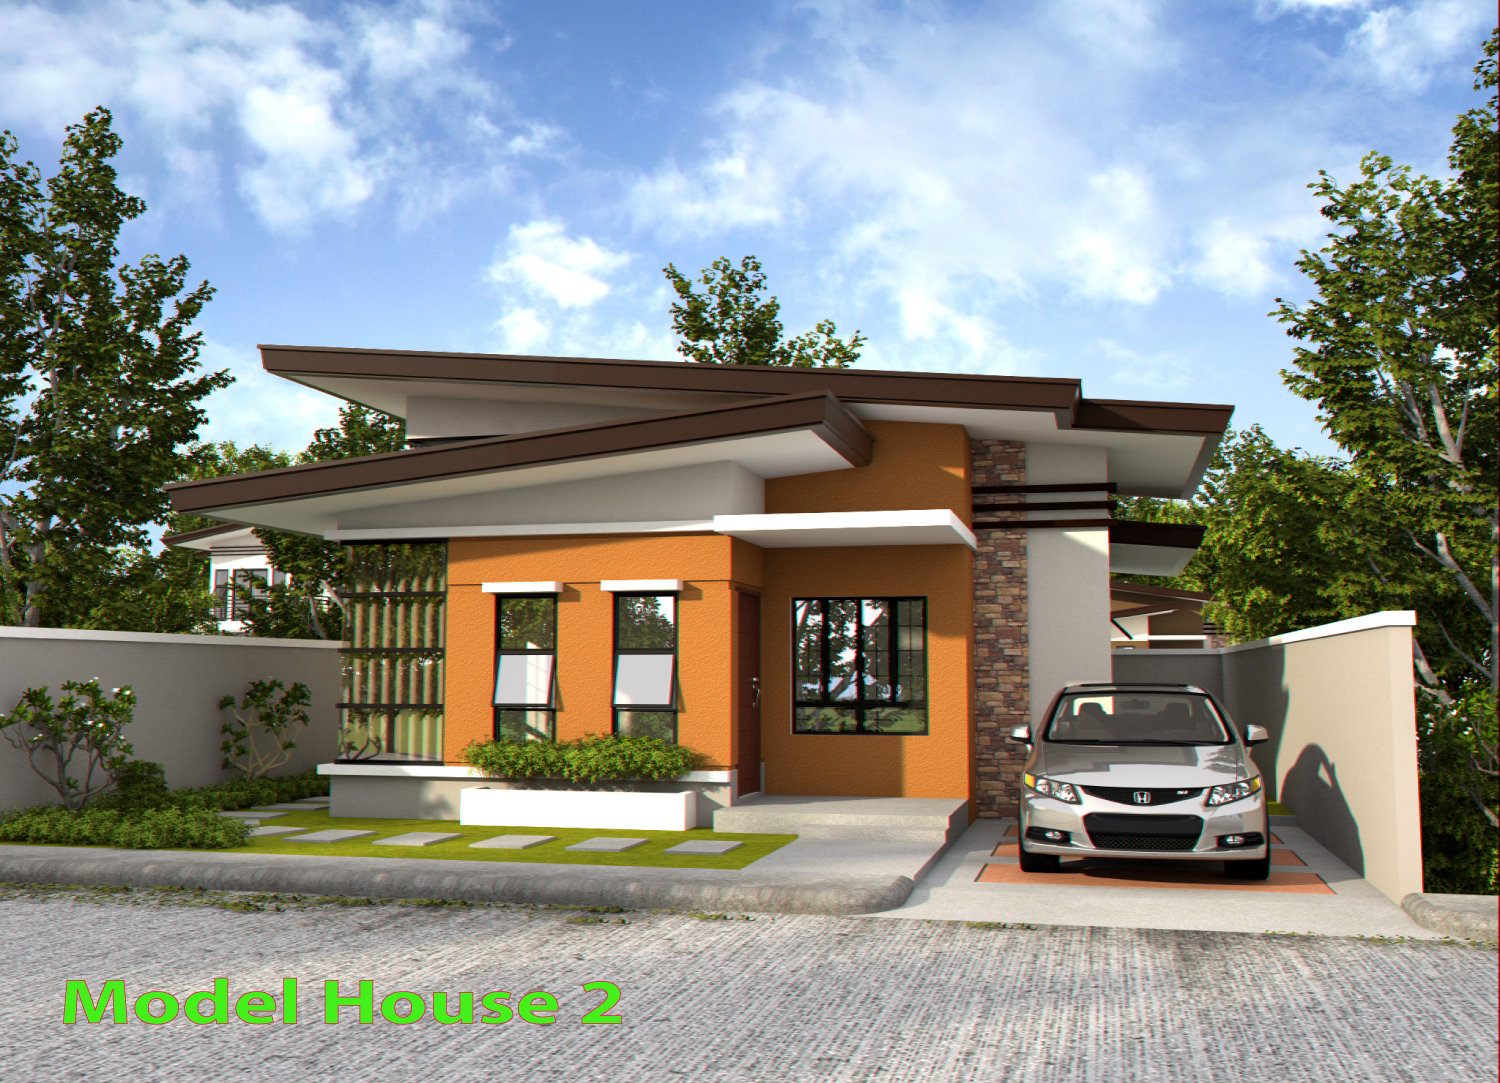 6 Bedroom Floor Plan Celerina Heights Subdivision Medium Cost Beautifully